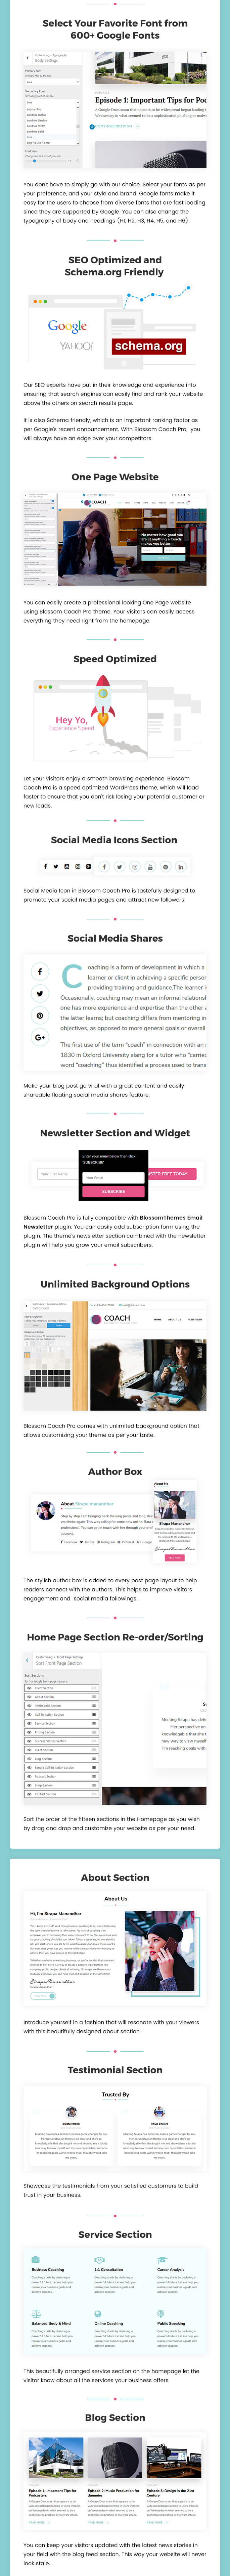 Speakers and Life Coaches WordPress Theme | Blossom Coach Pro